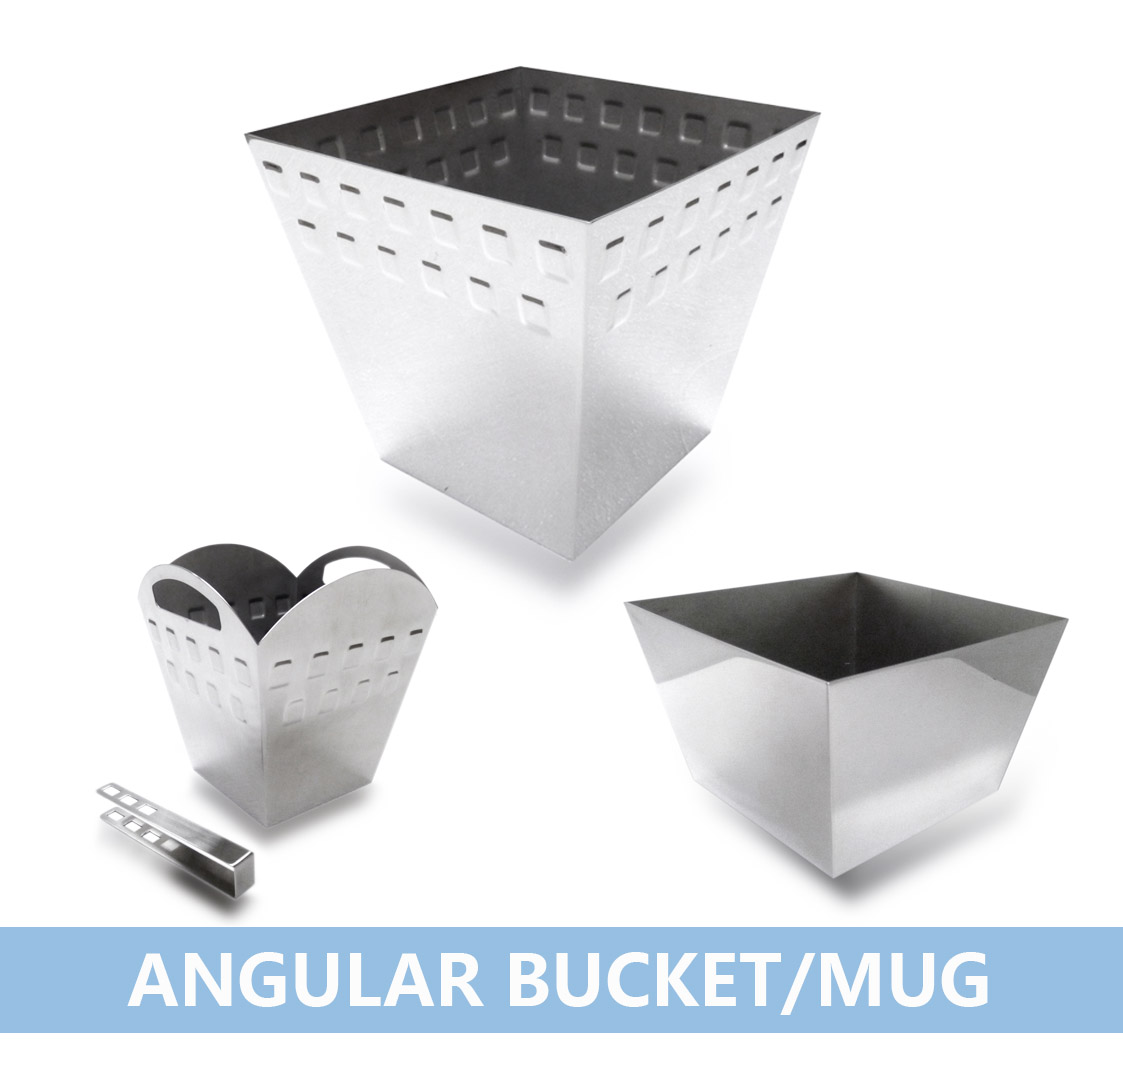 方角形桶及碗 Angular Bucket  Mug